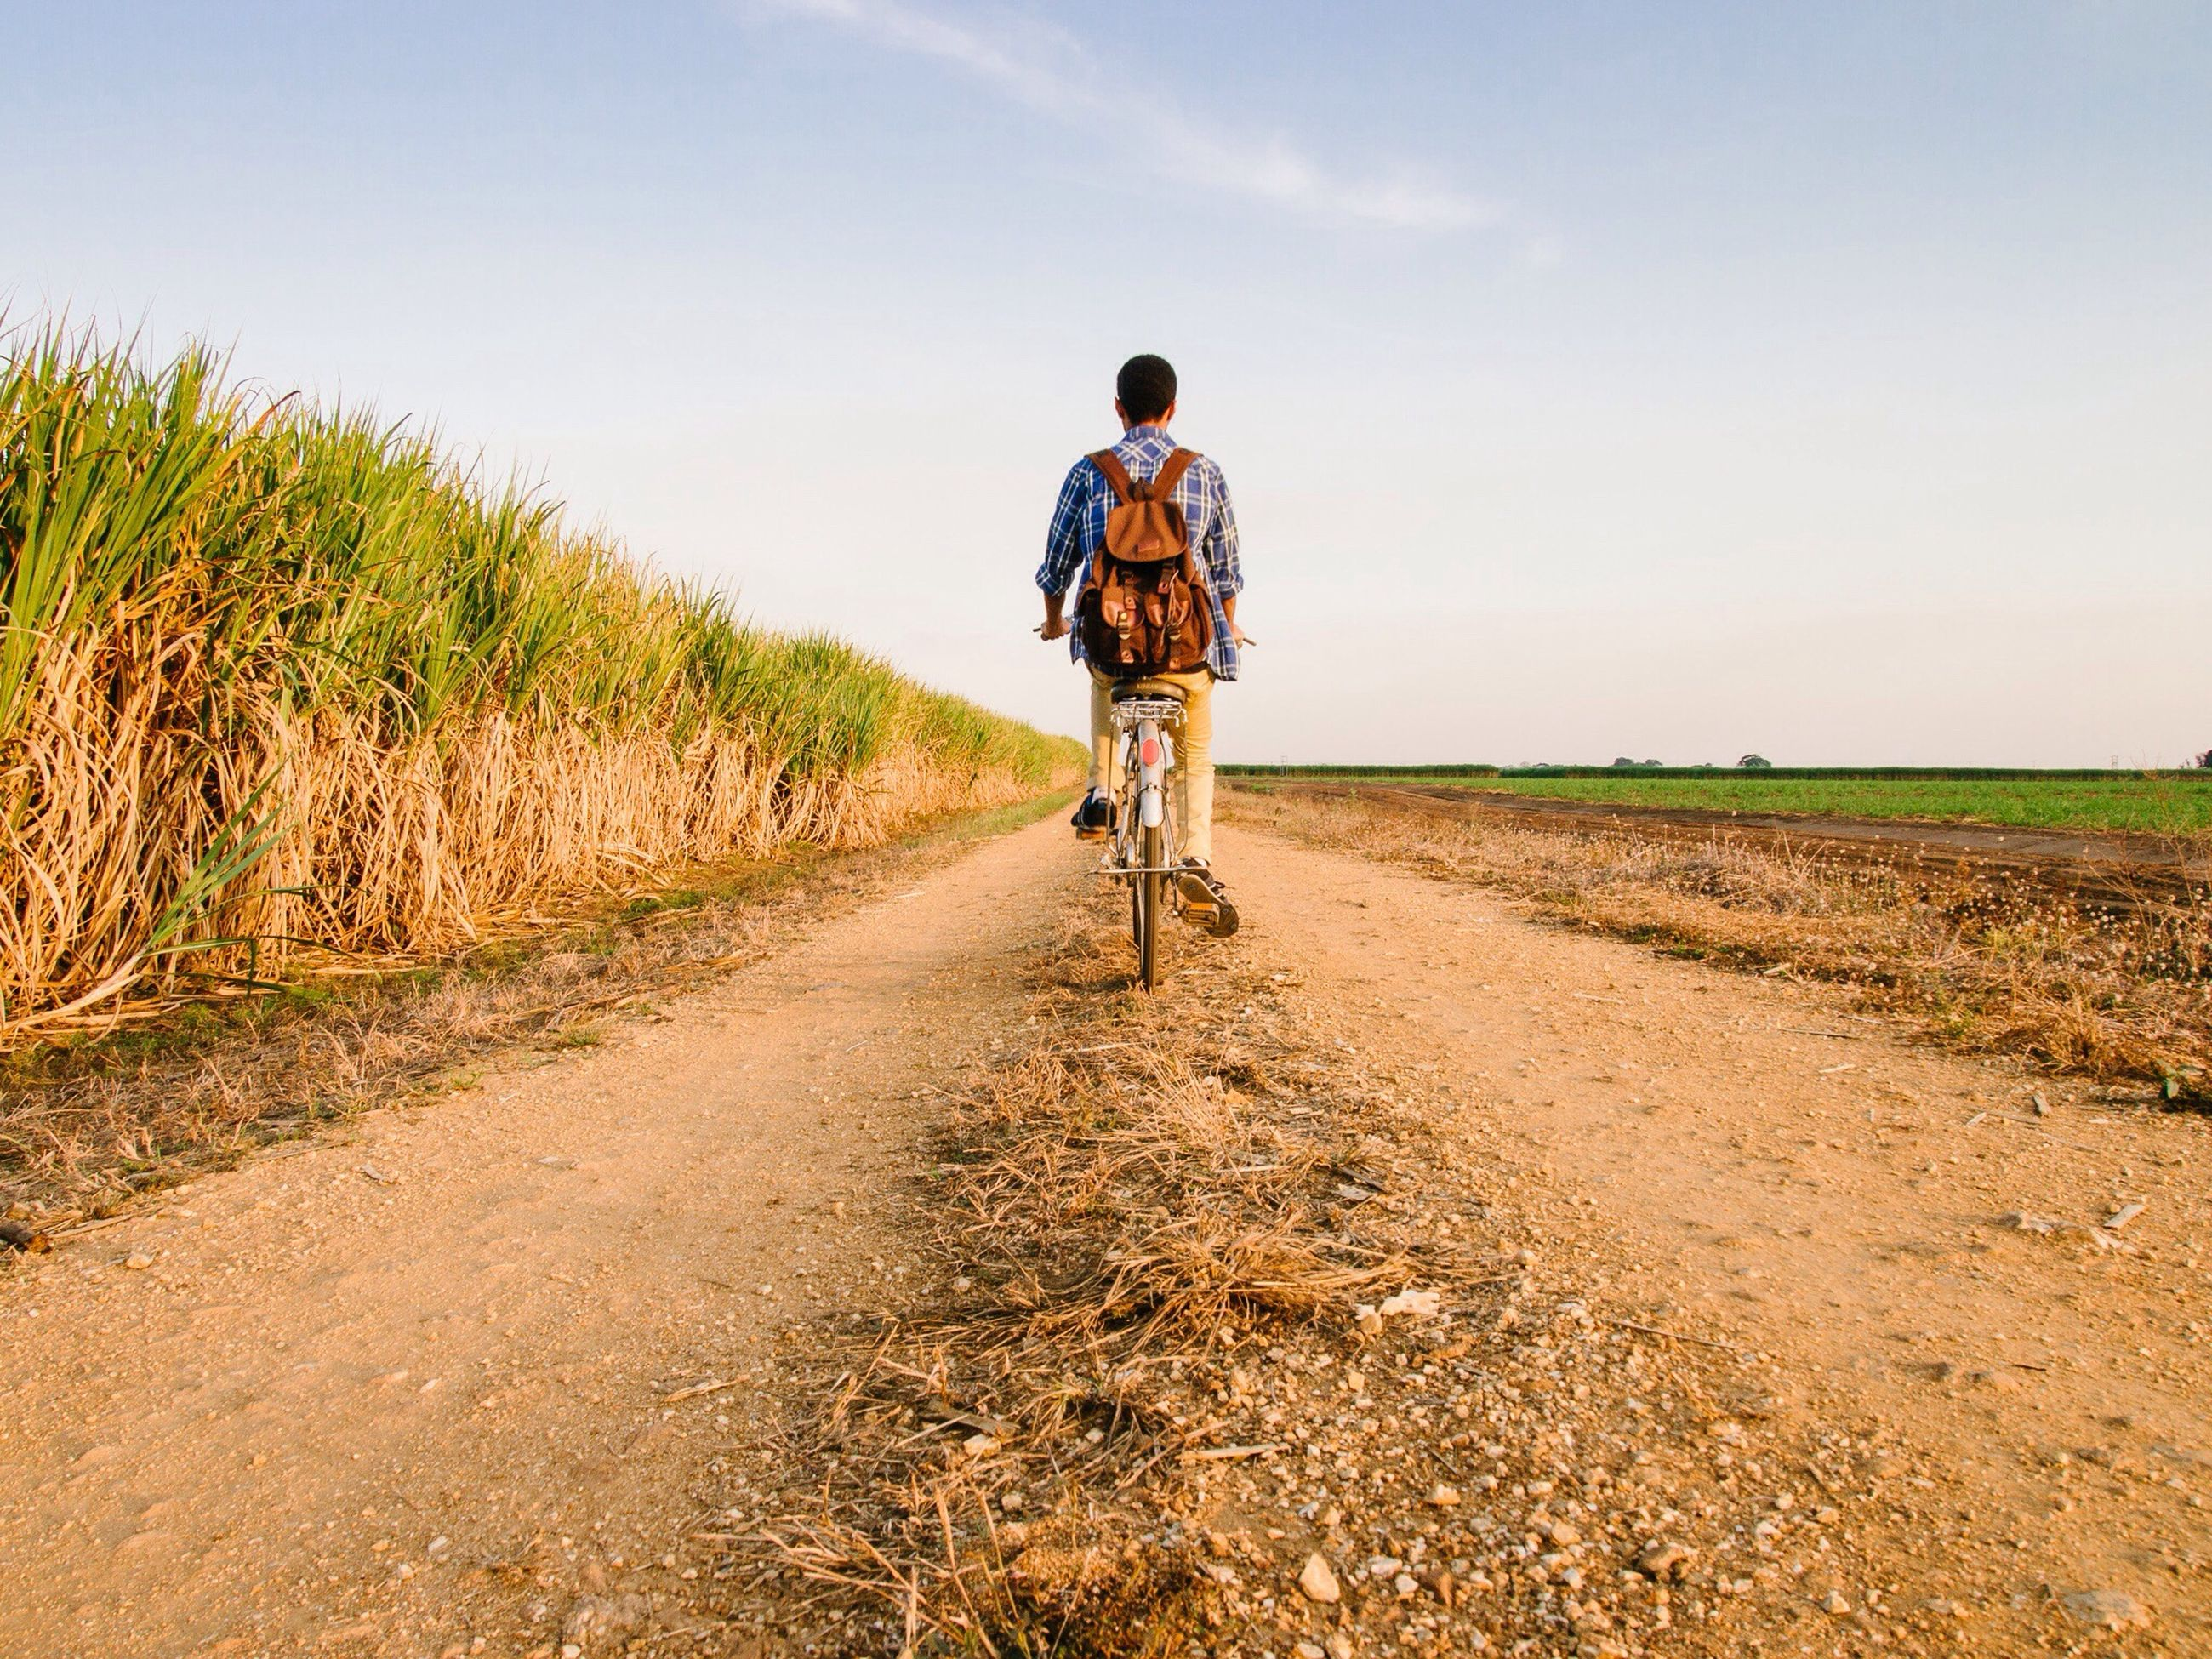 full length, lifestyles, rear view, the way forward, landscape, leisure activity, dirt road, casual clothing, sky, field, walking, rural scene, agriculture, tranquility, men, tranquil scene, nature, grass